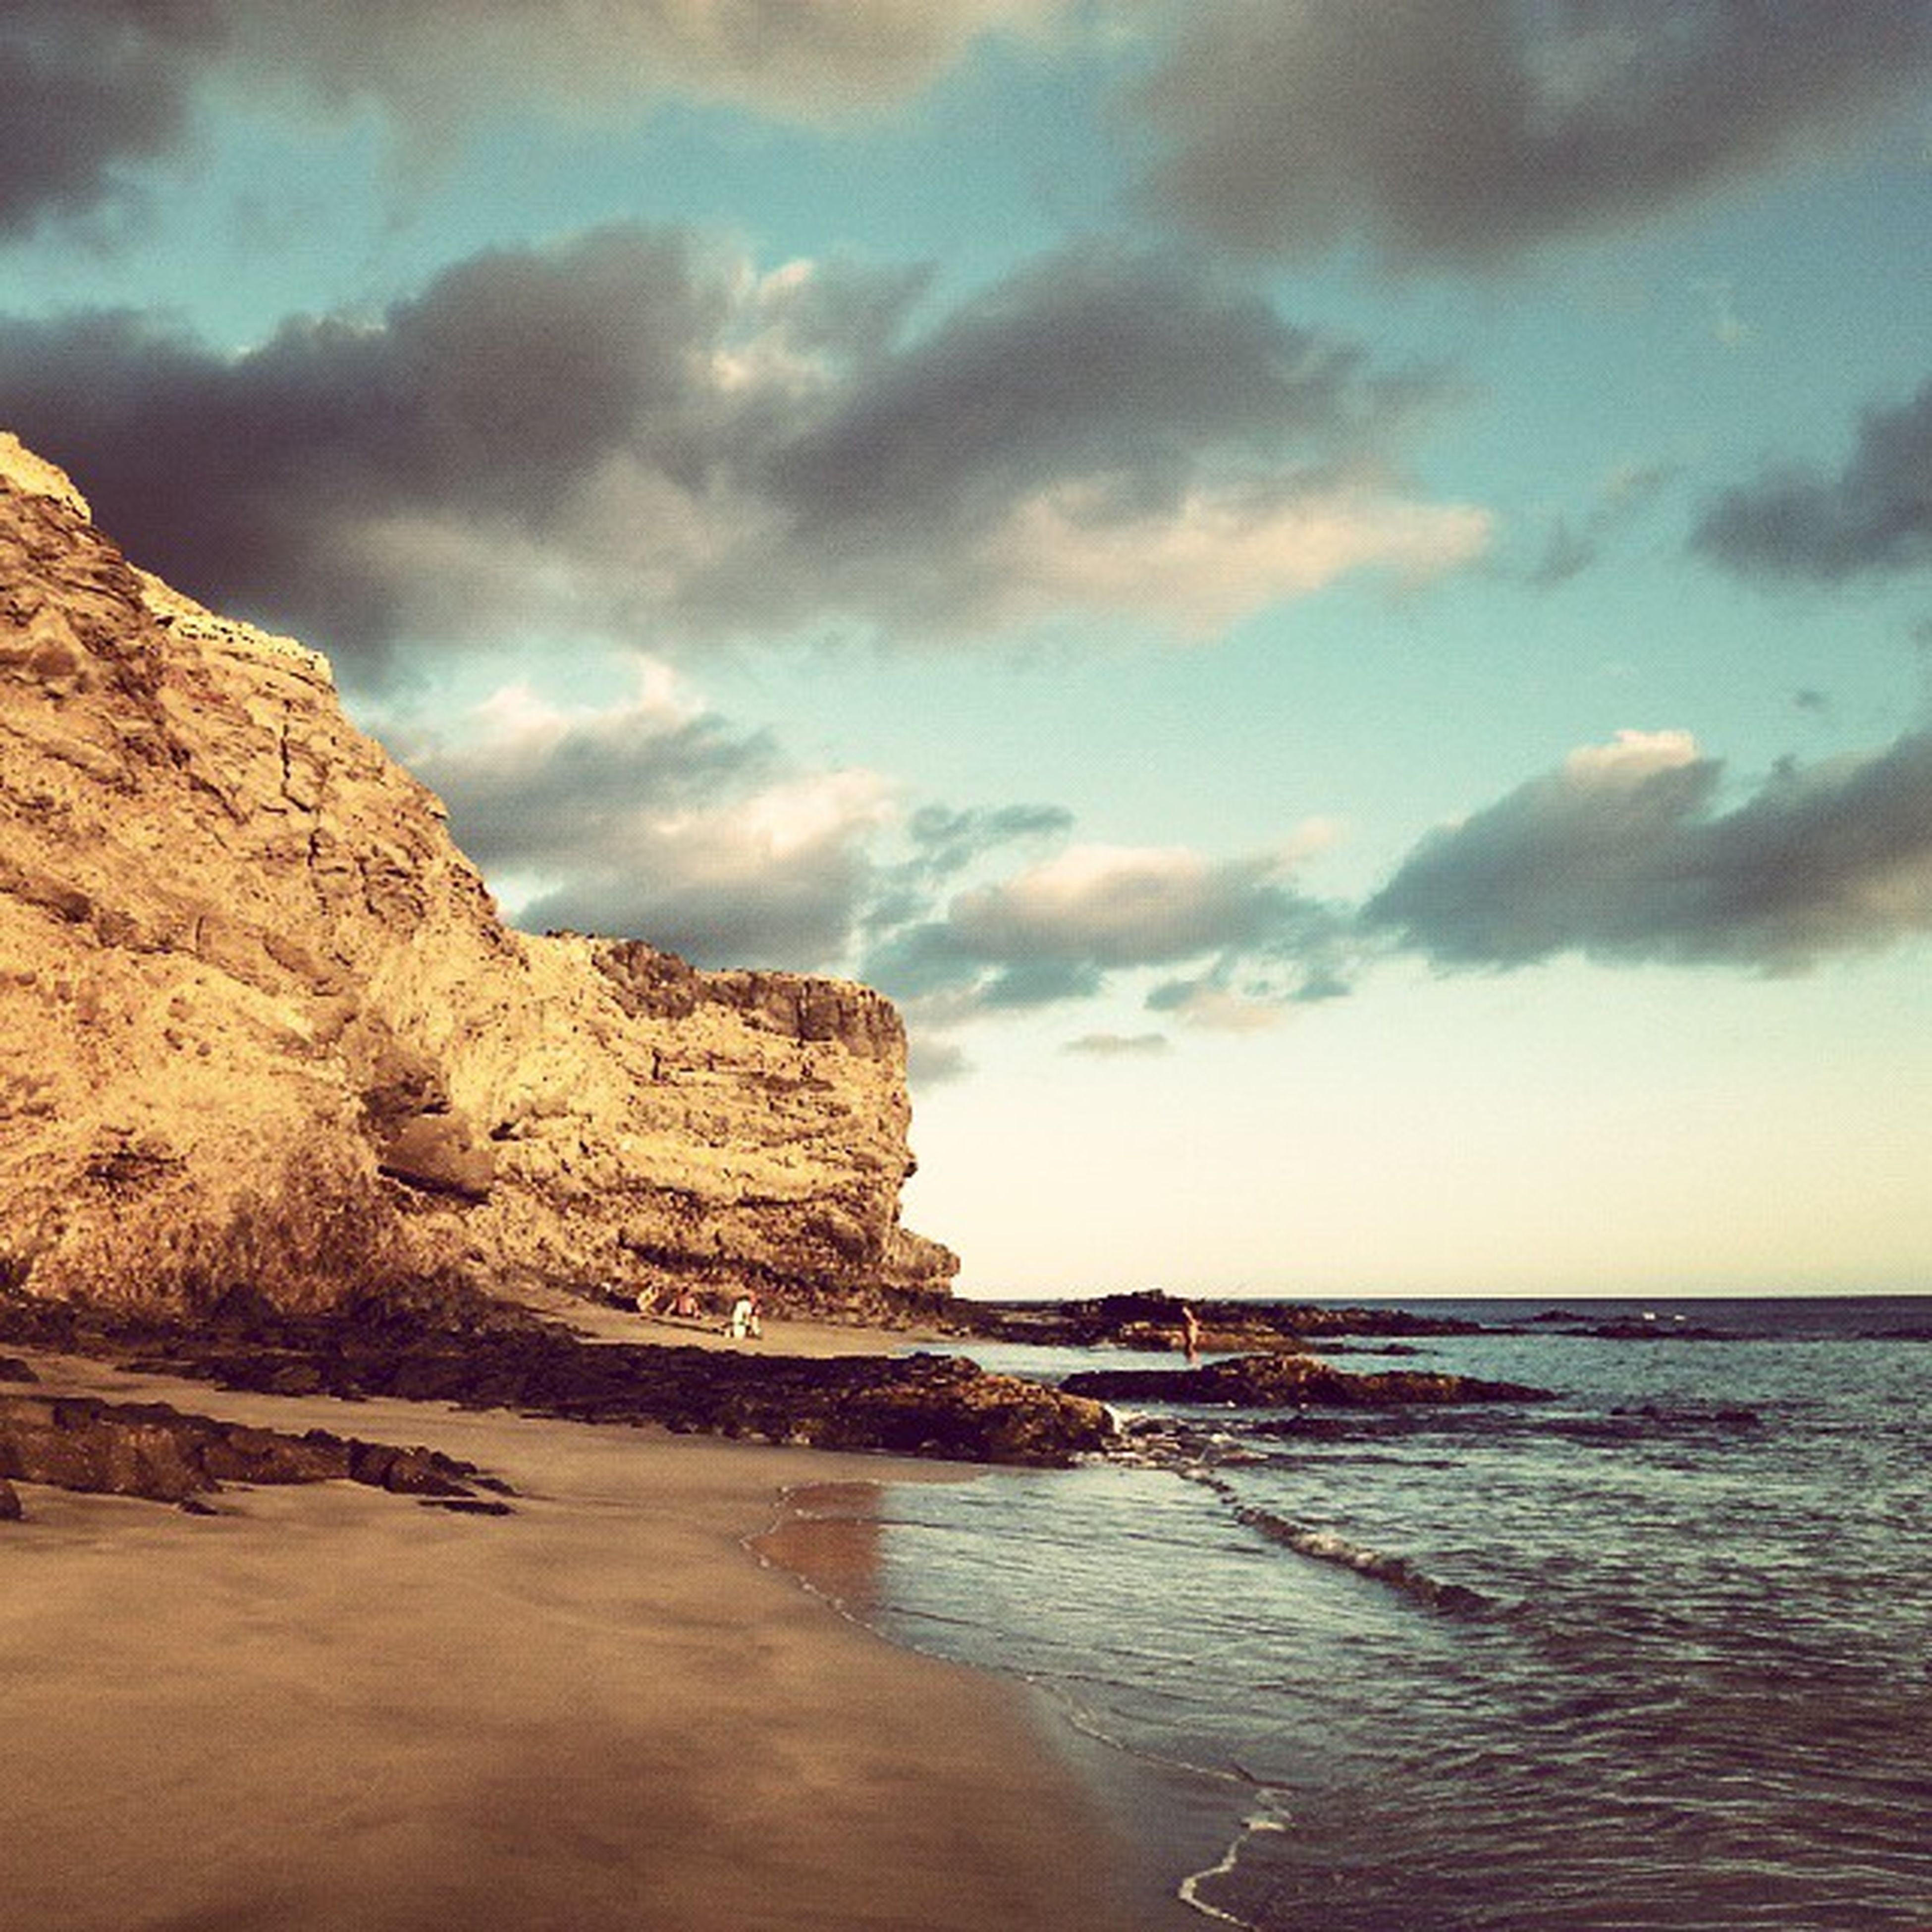 water, sea, sky, scenics, tranquil scene, cloud - sky, beach, tranquility, beauty in nature, horizon over water, rock - object, cloudy, shore, nature, rock formation, cloud, idyllic, waterfront, coastline, outdoors